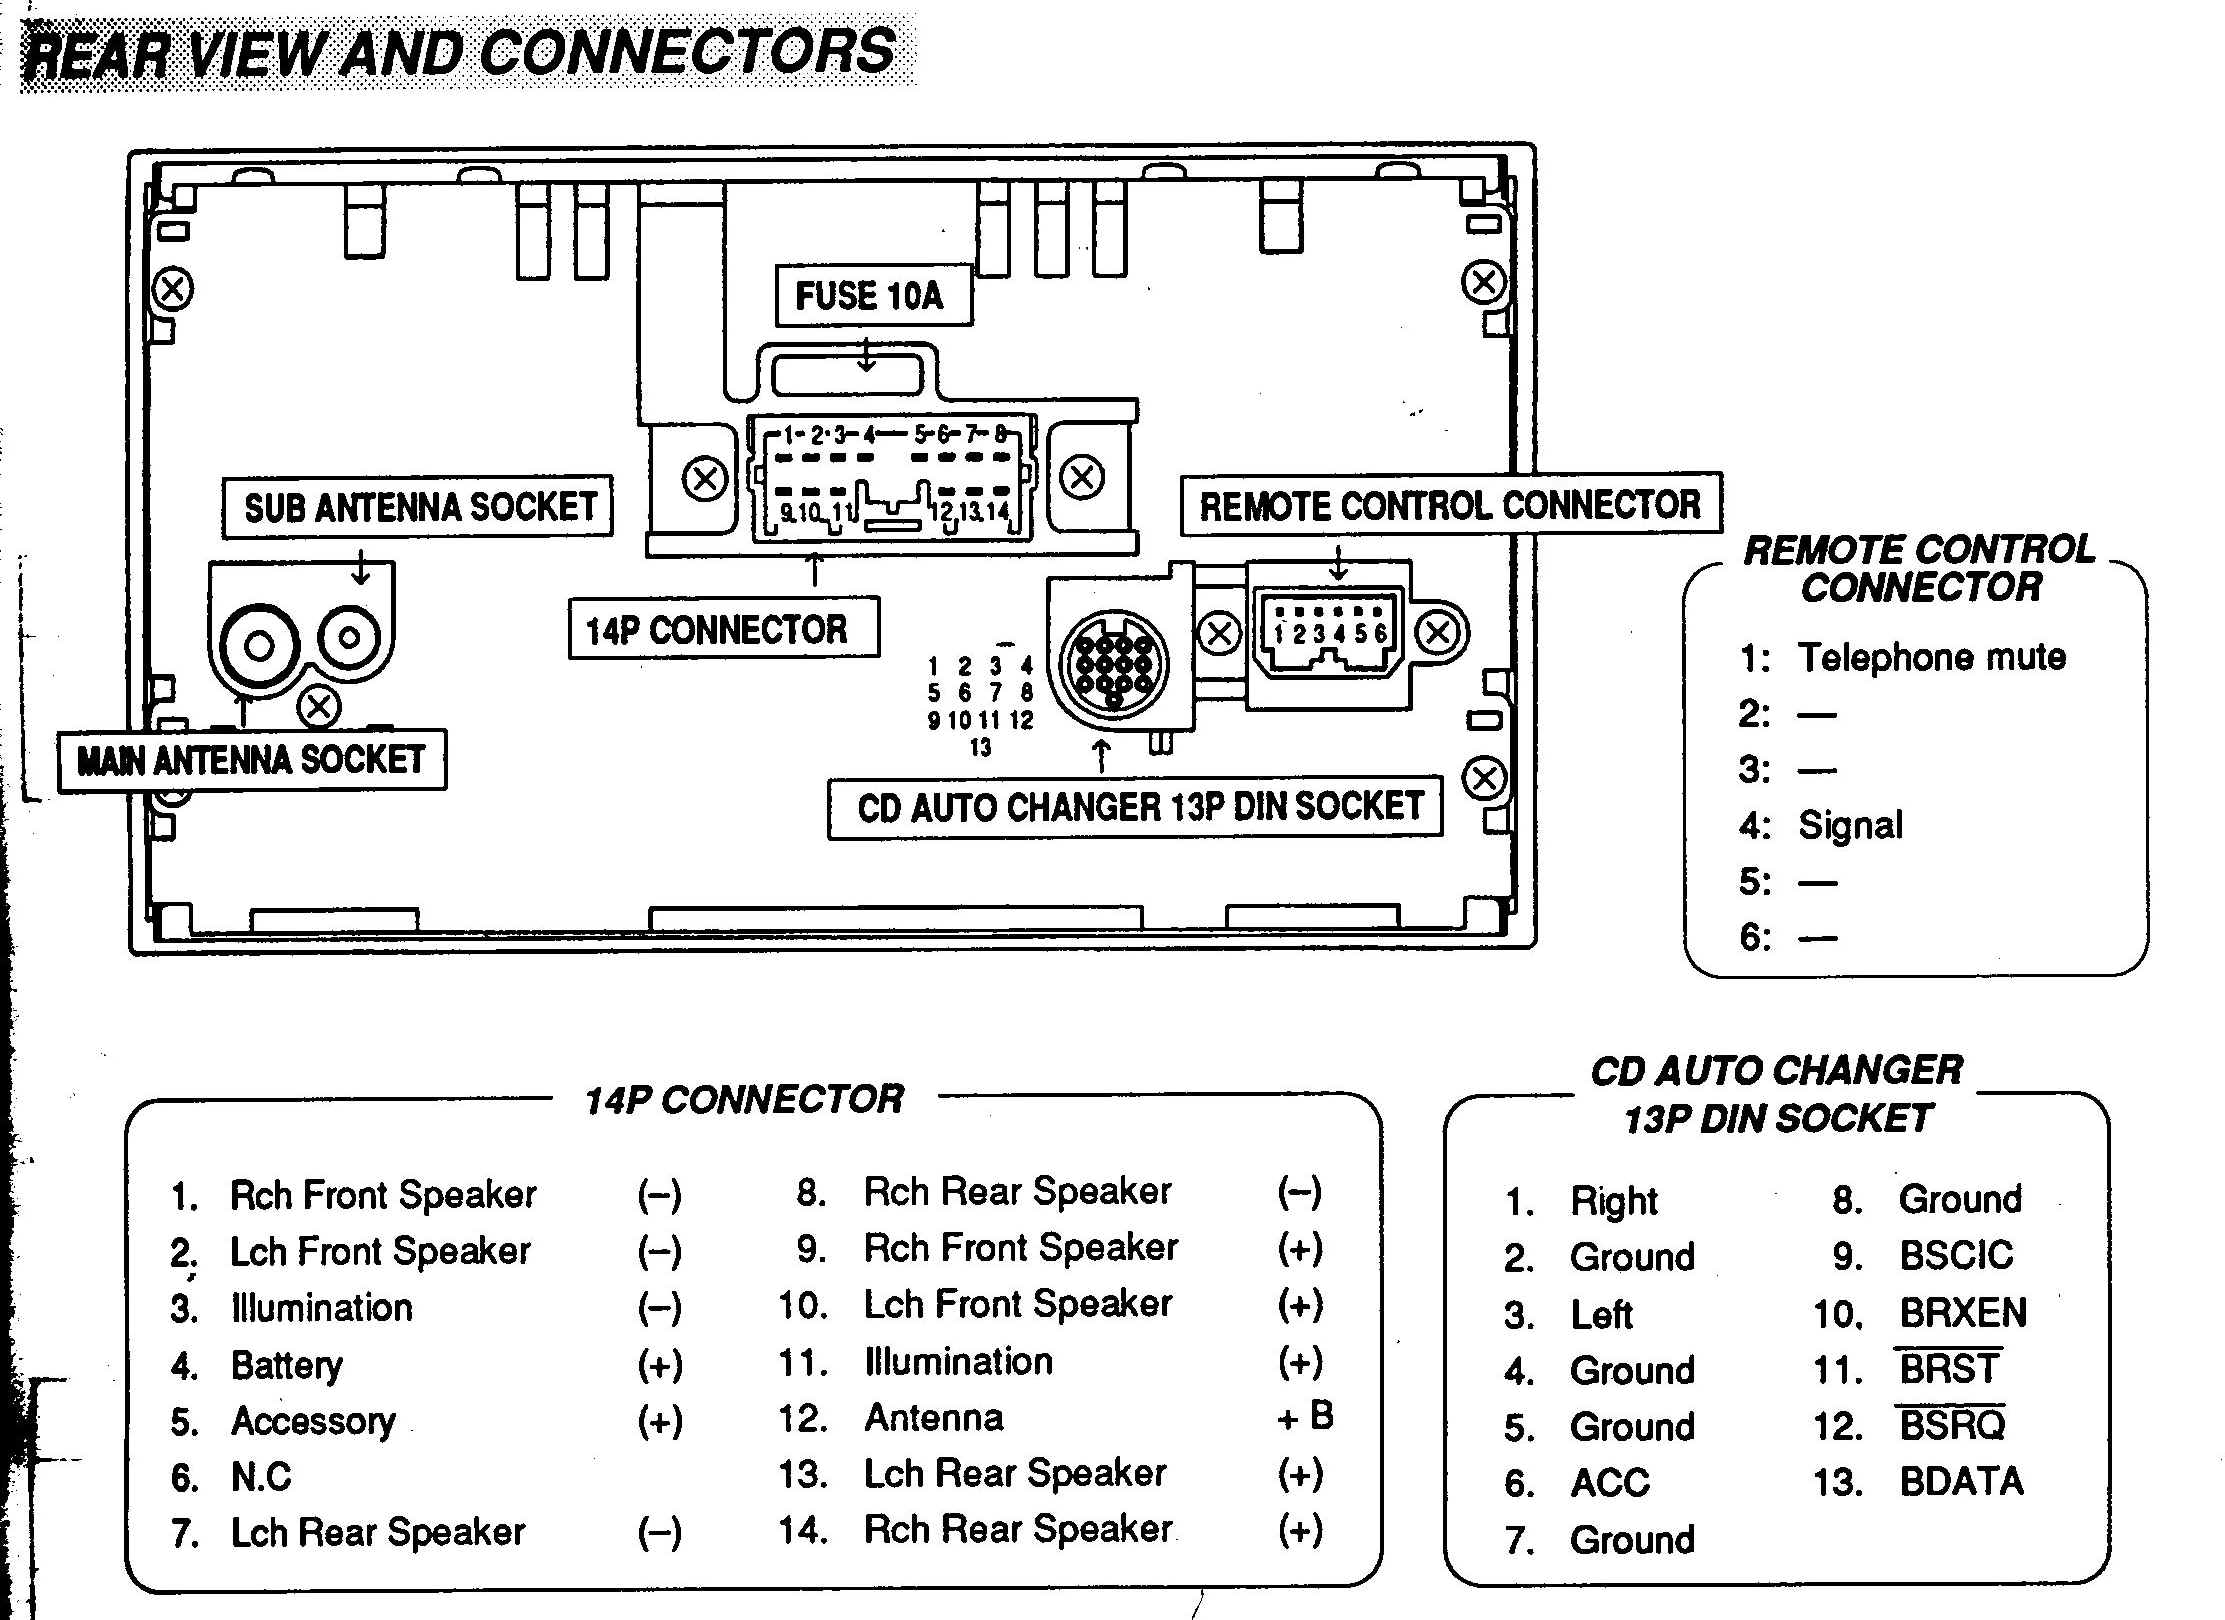 WireHarnessMit121003 car audio wire diagram codes mitsubishi factory car stereo radio diagram at bakdesigns.co